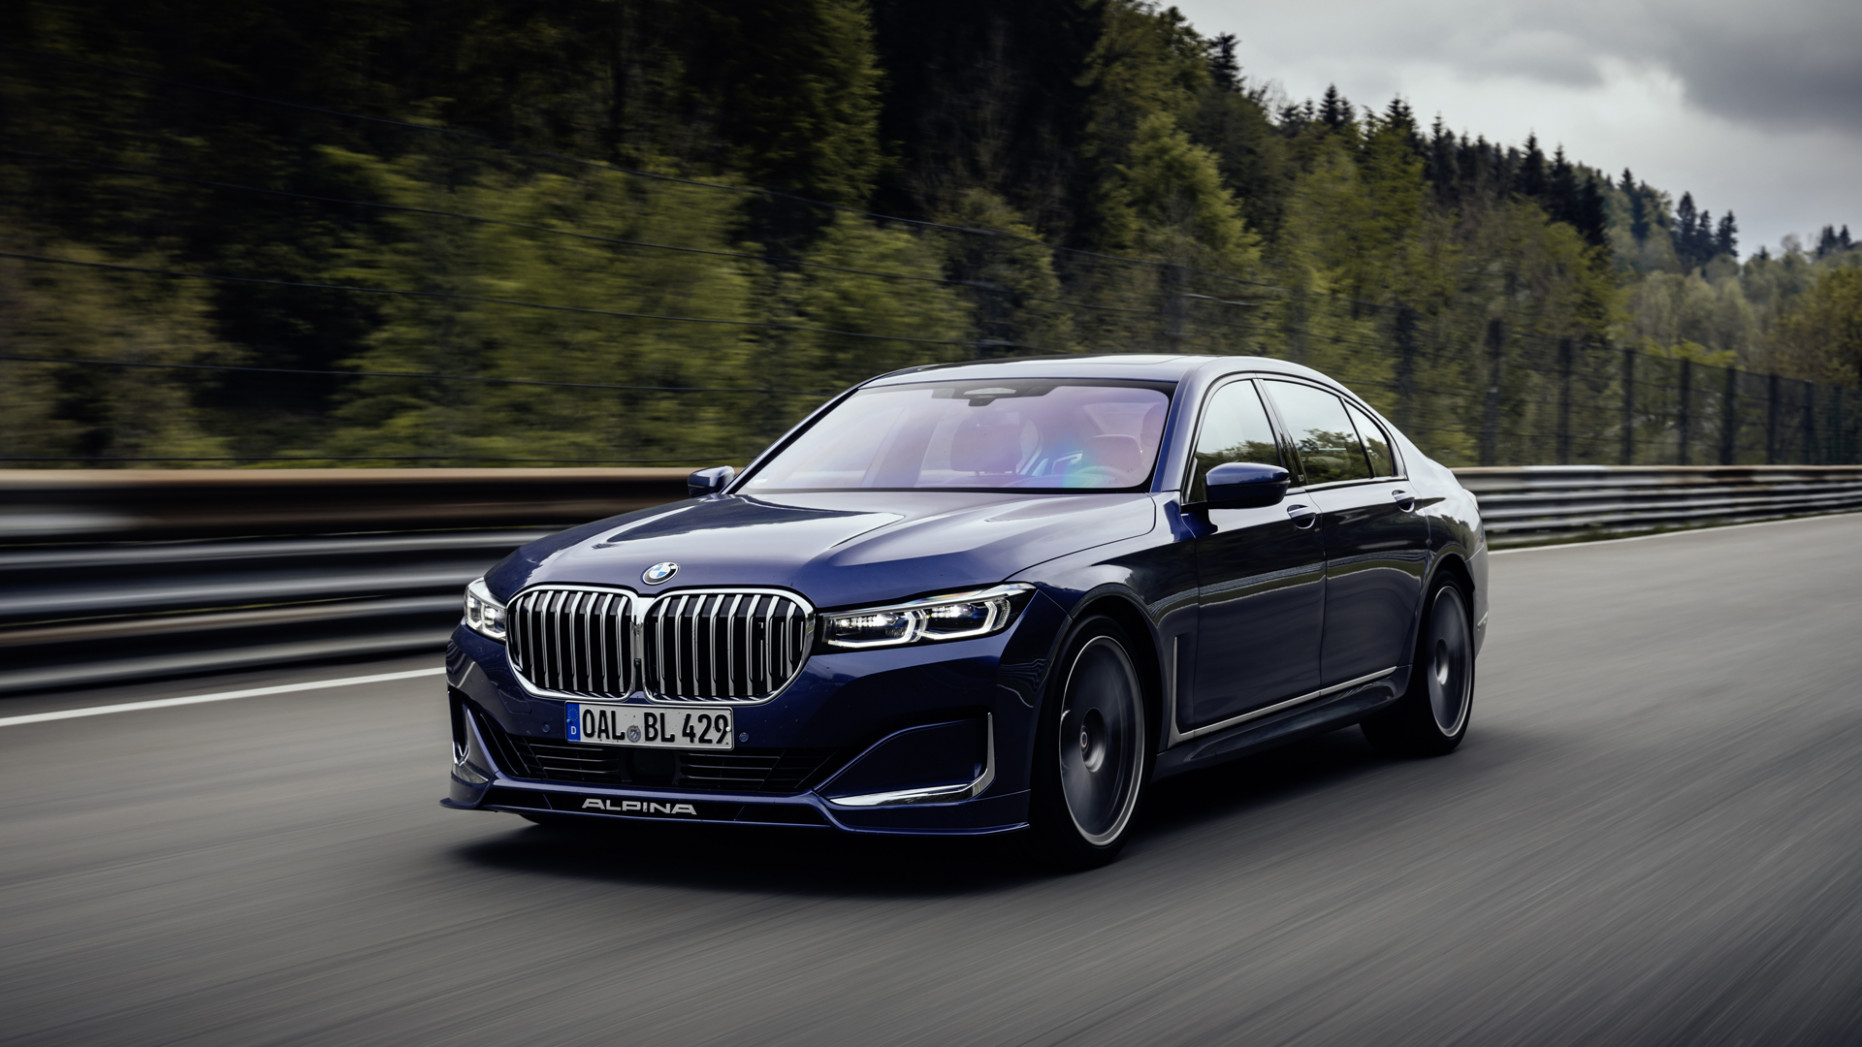 8 Alpina B8 Review | What's new, performance, BMW 8 Series ...